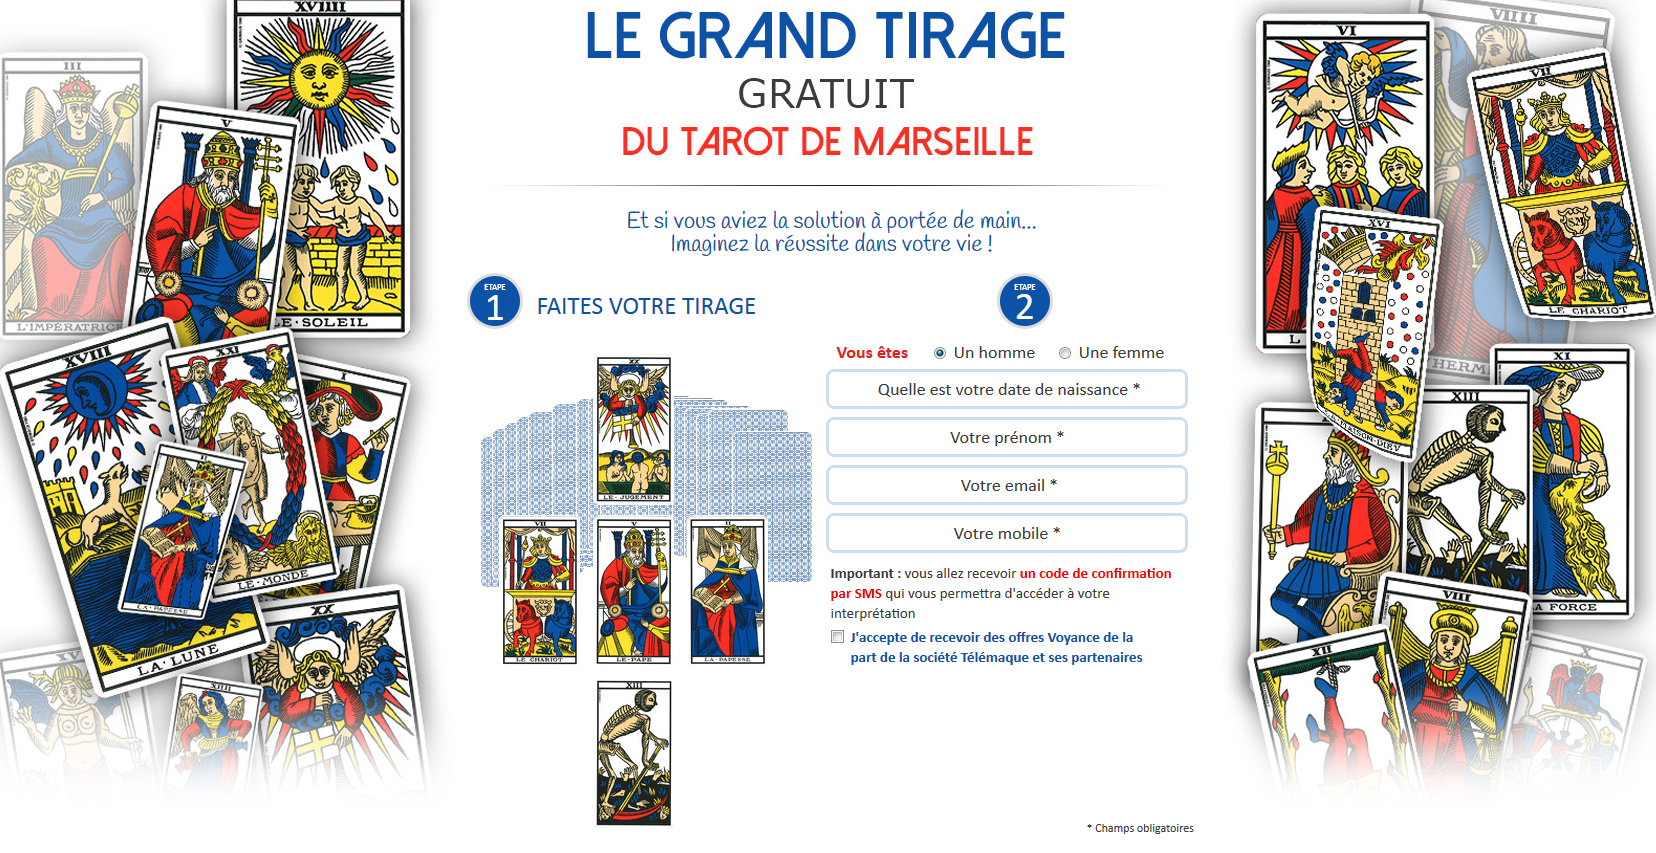 tarot de marseille tirage gratuit pour 2015. Black Bedroom Furniture Sets. Home Design Ideas